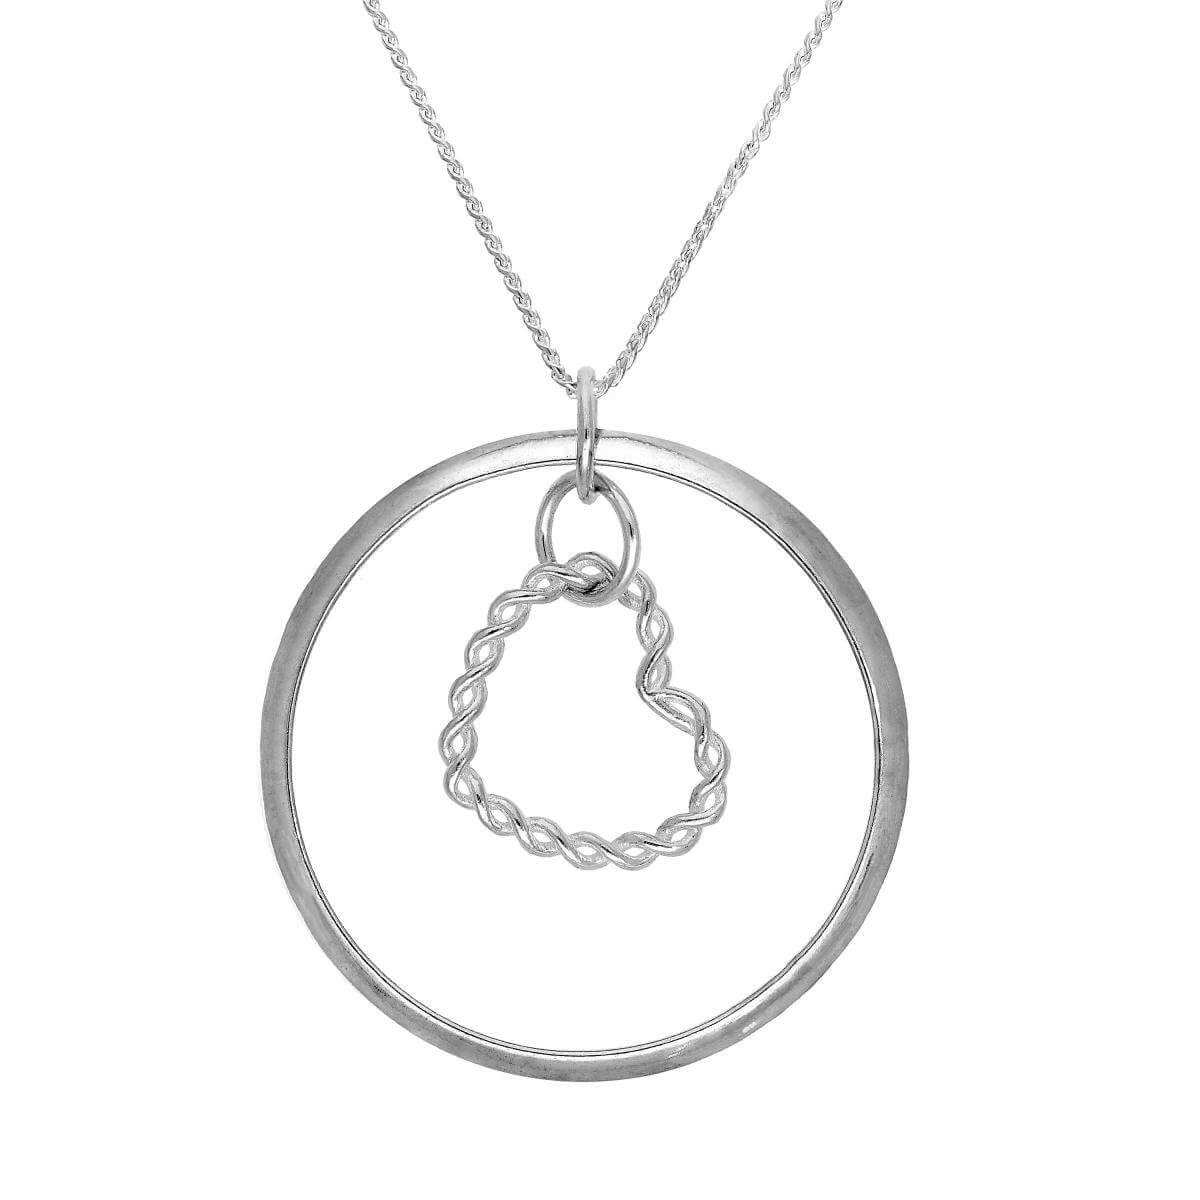 Sterling Silver Karma Moments Twisted Heart Pendant on Foxtail Chain Necklace